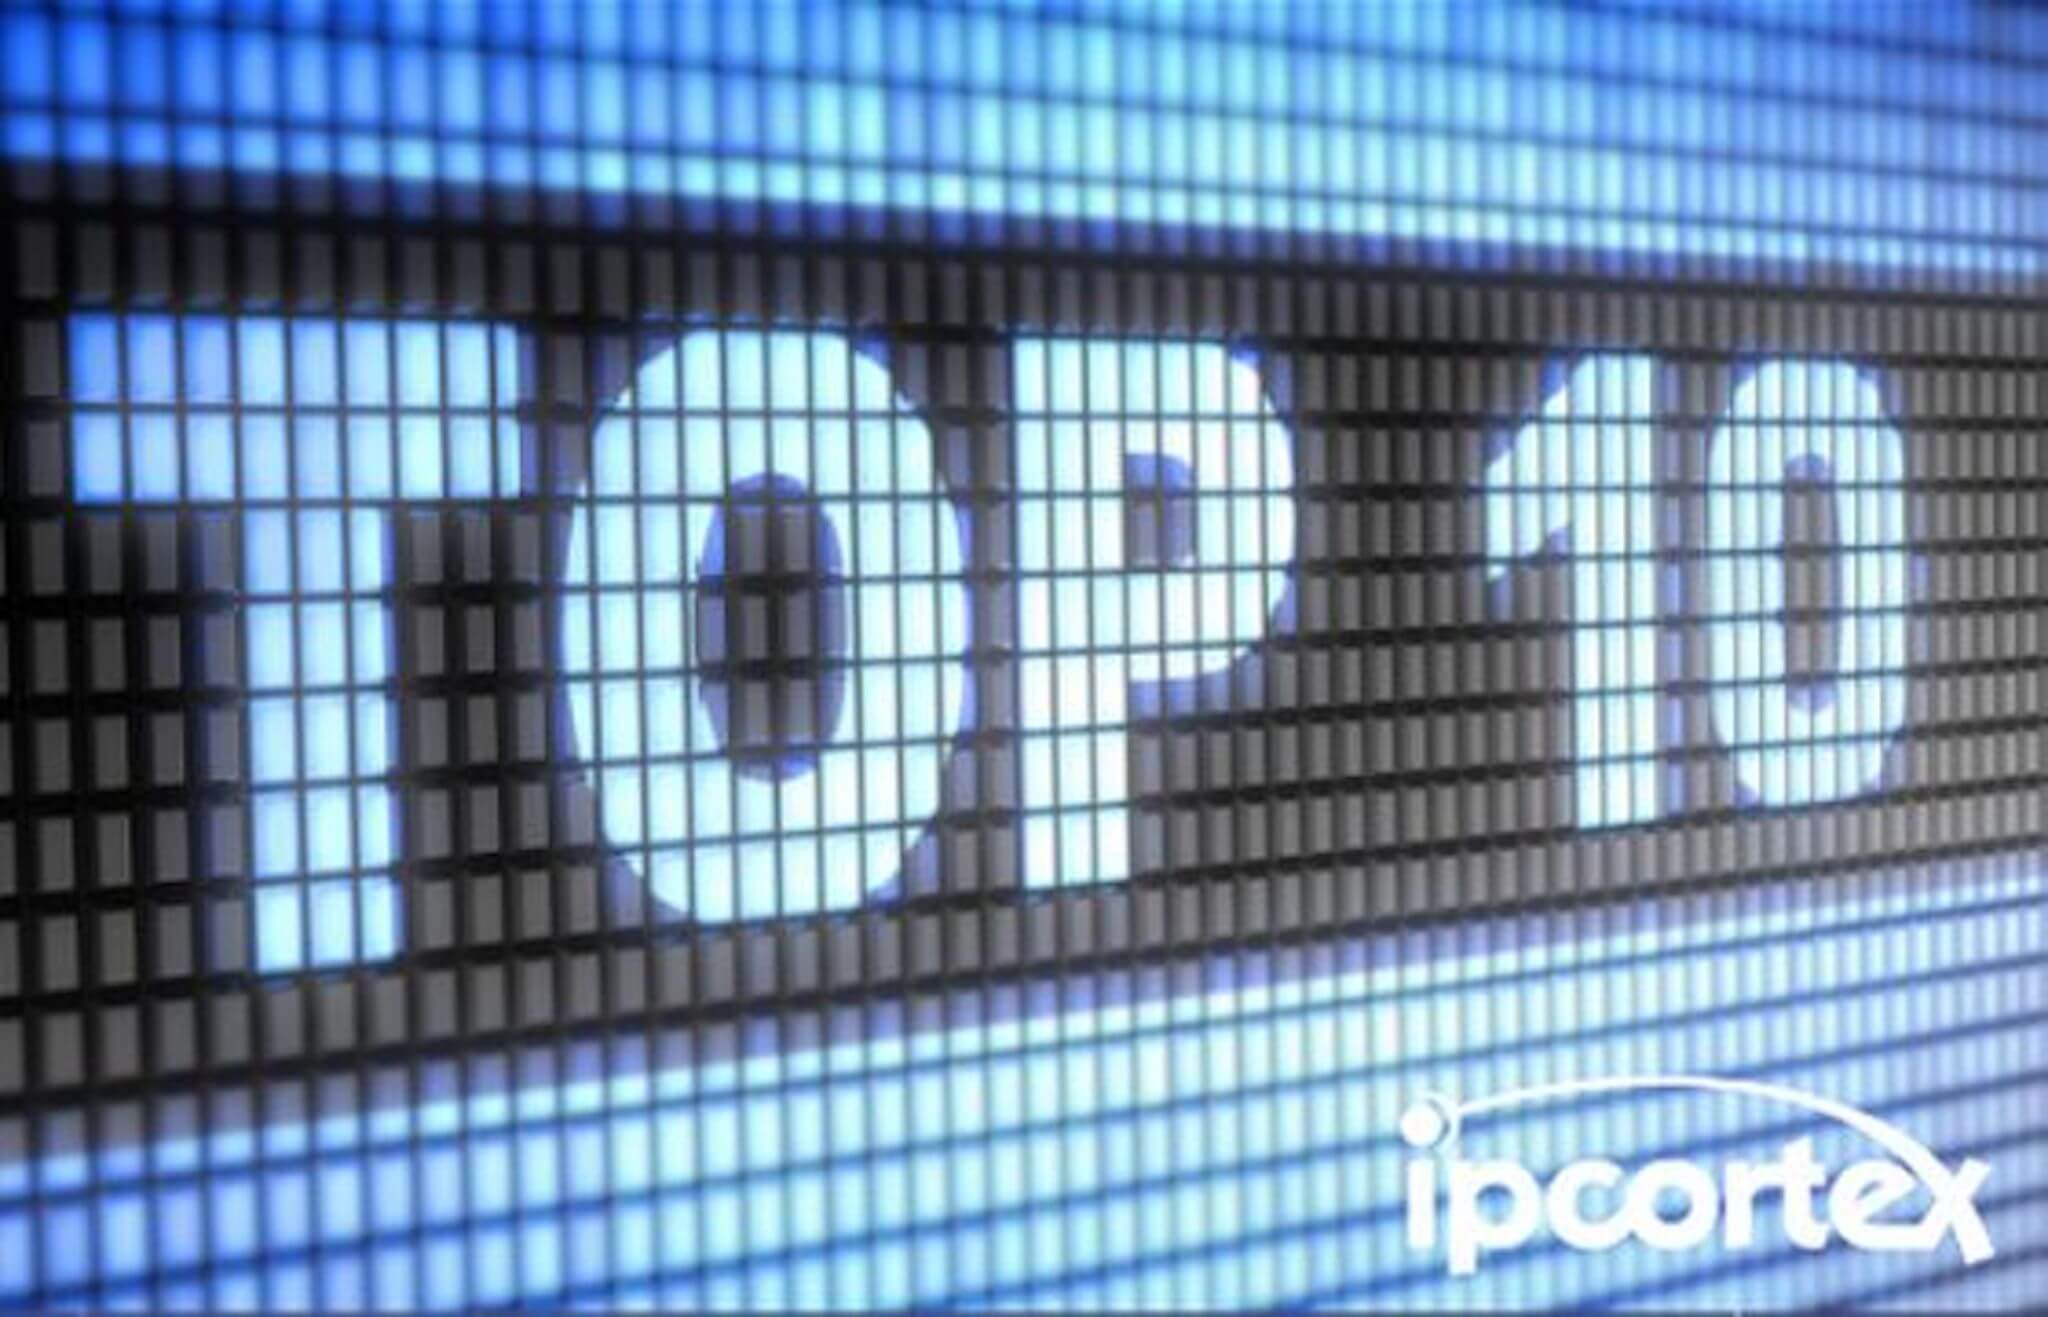 Ipcortex Named In Top Cloud Comms Platforms For Service Provider